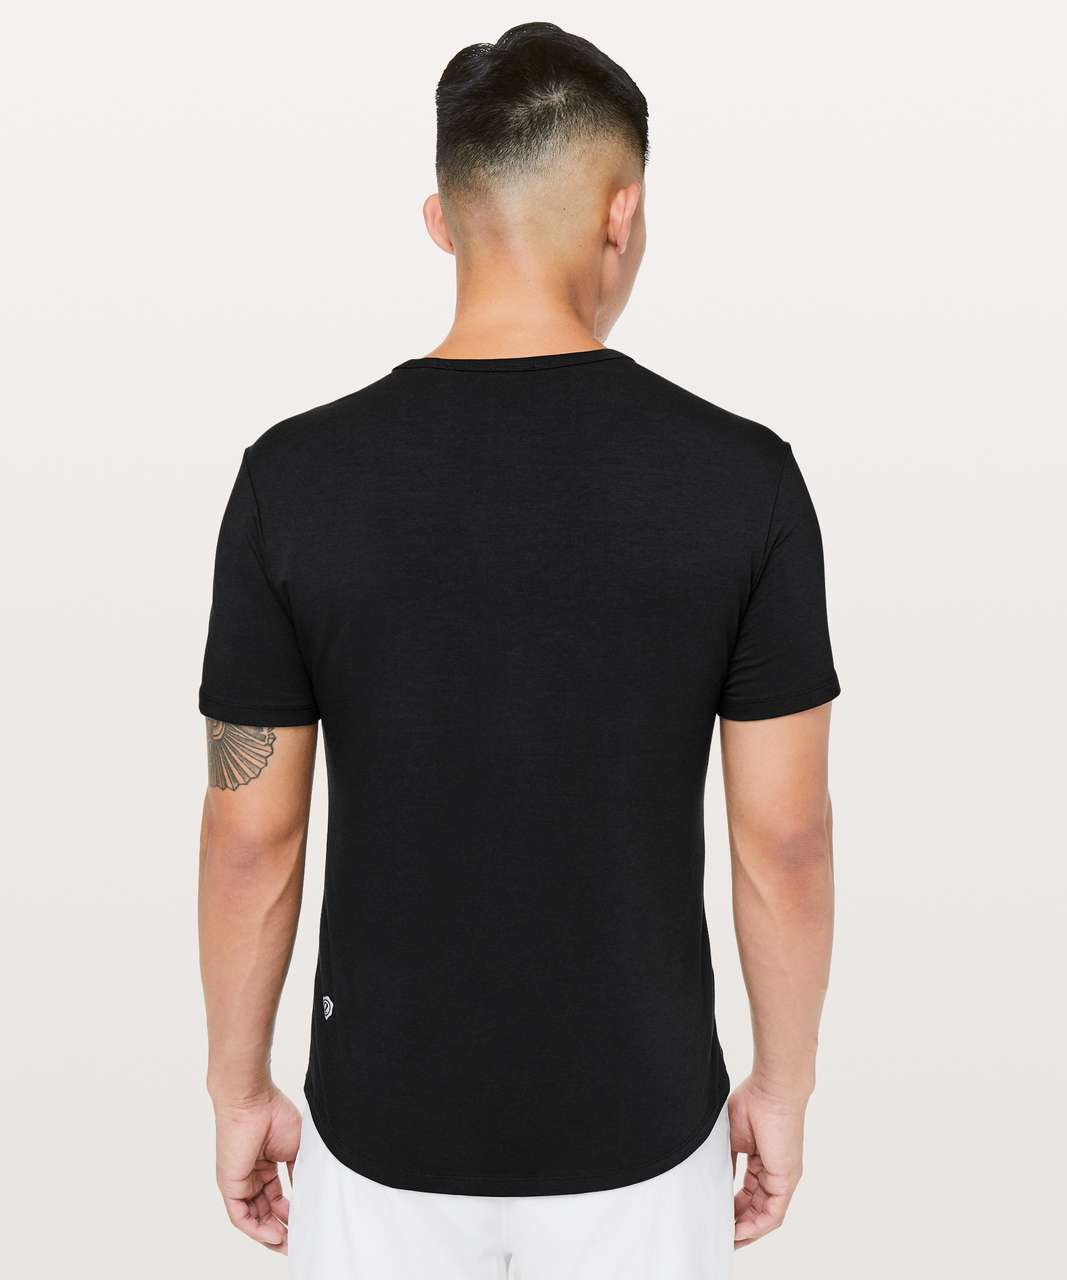 Lululemon 5 Year Basic Tee *SW - Black